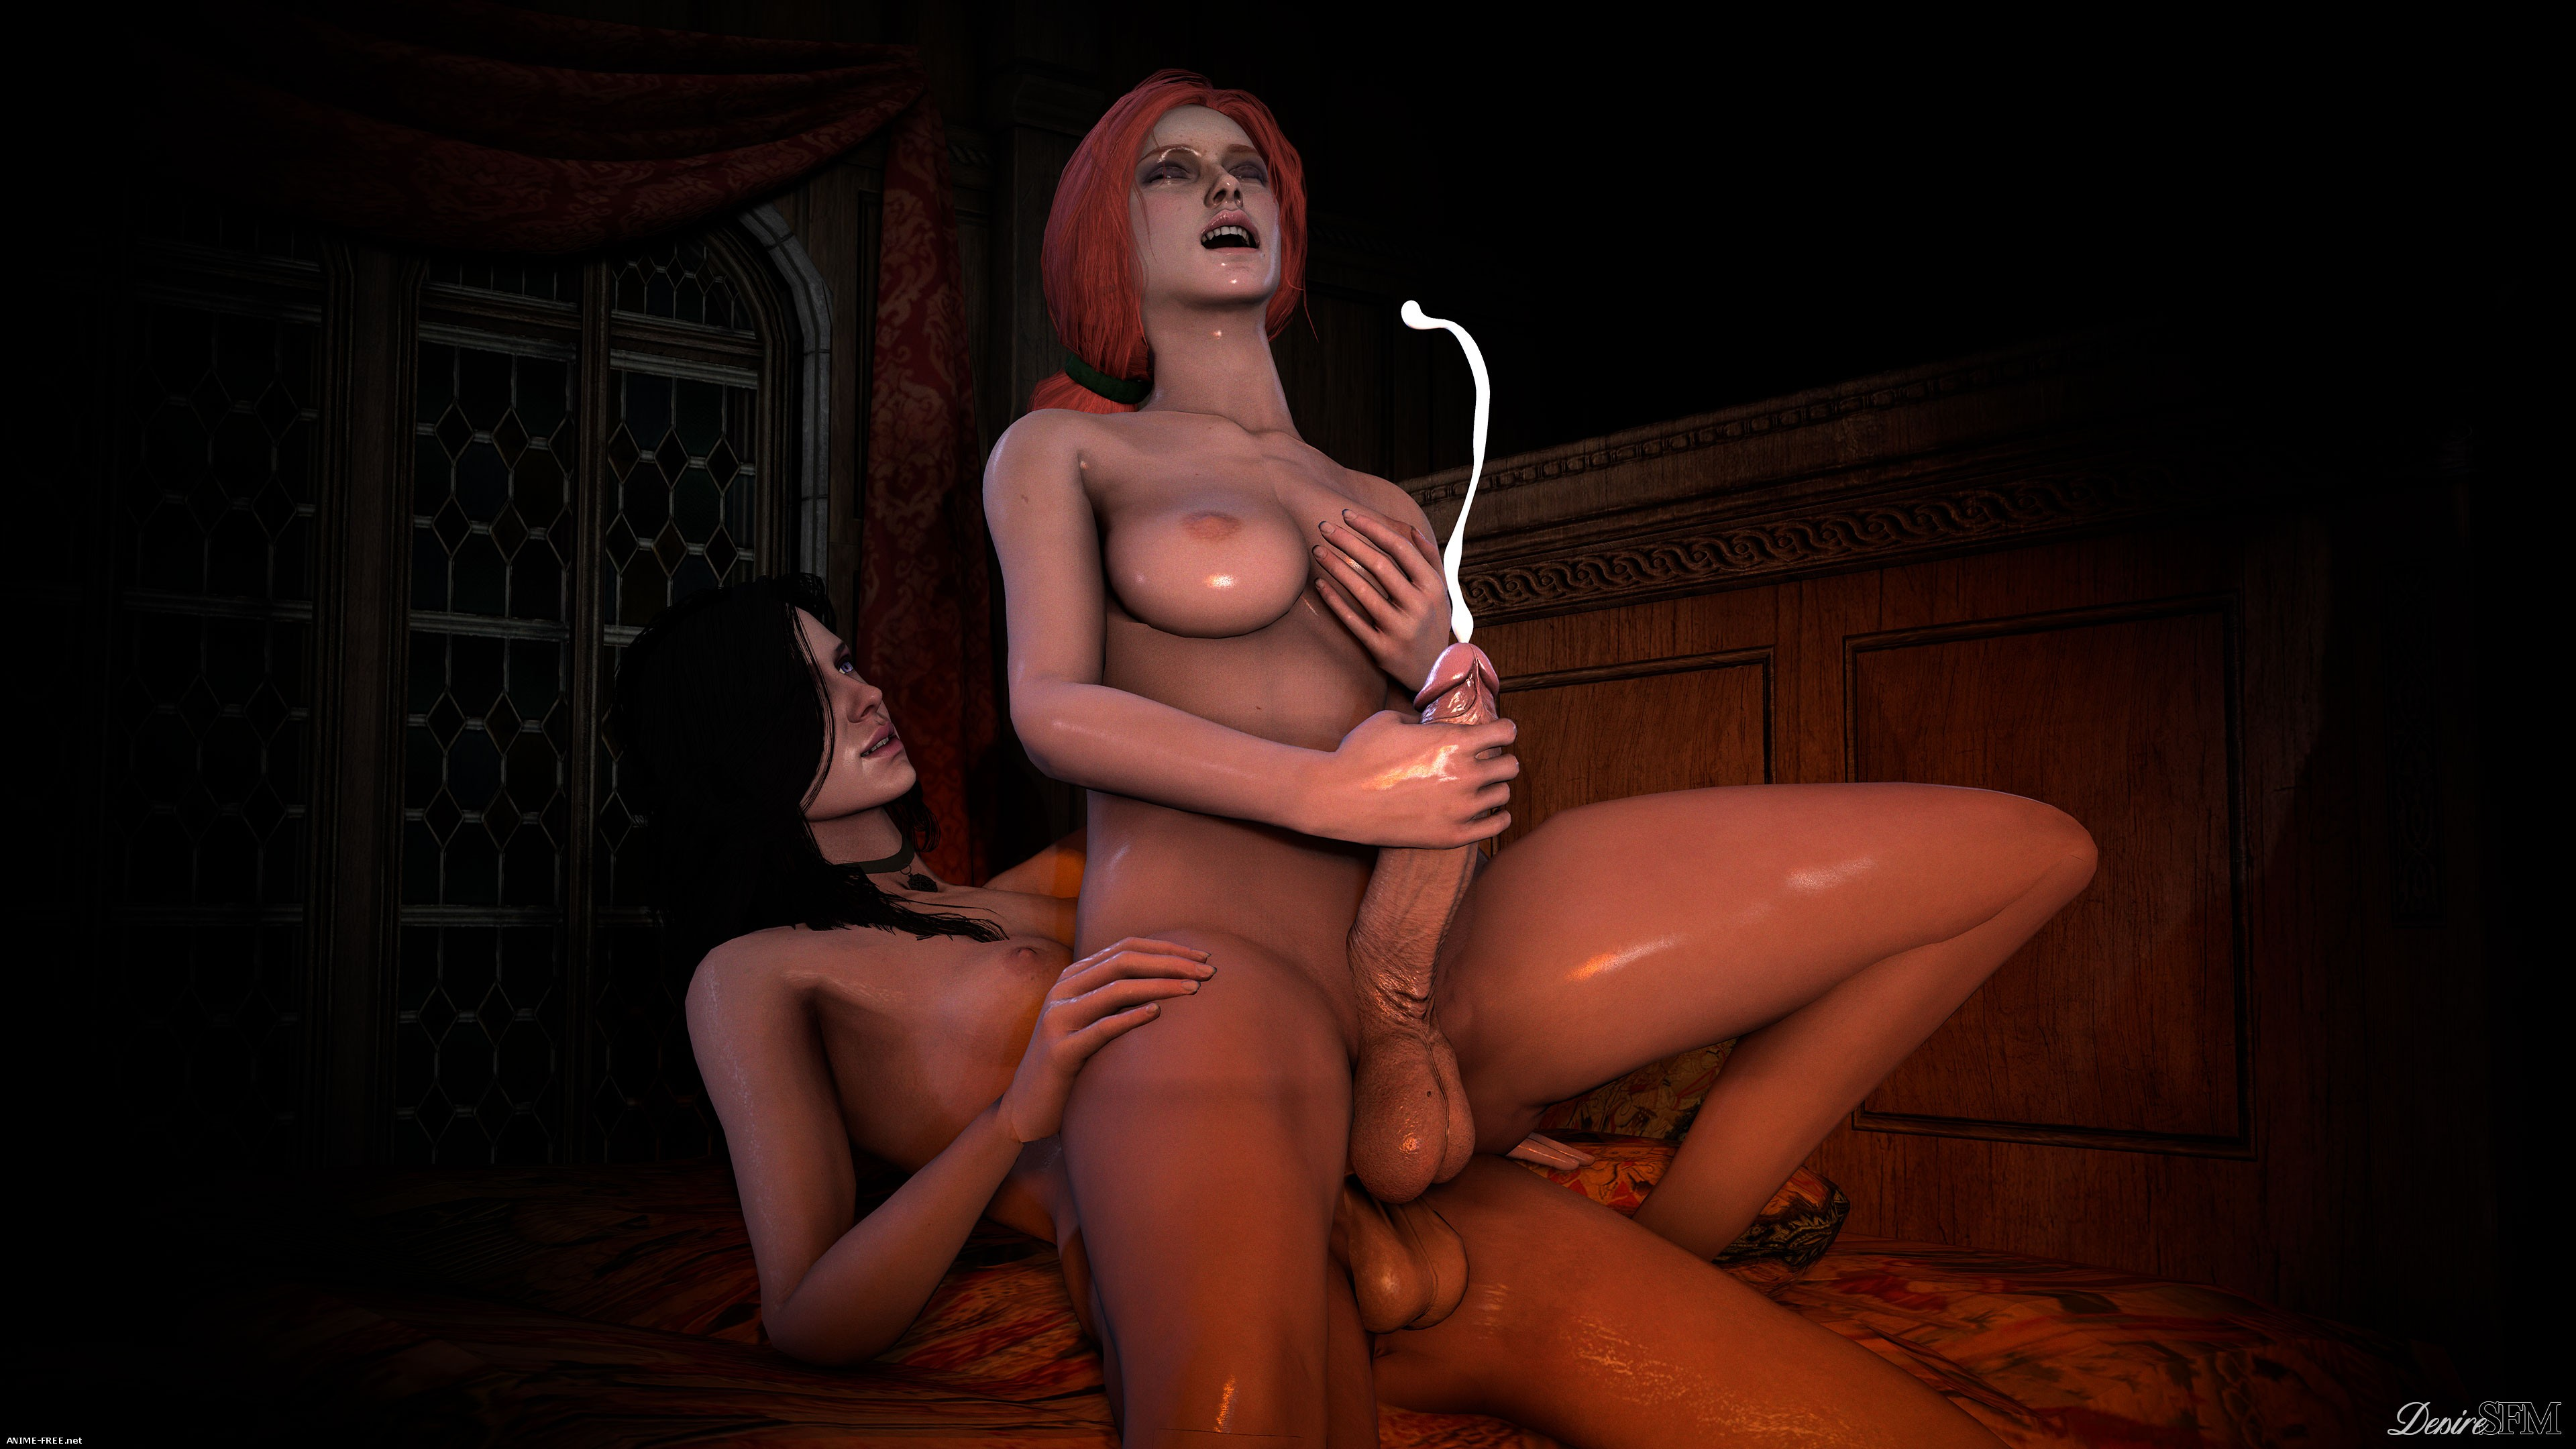 DesireSFM Picures (ArtWork Collection) - Сборник арта [3DCG] [Uncen] [JPG] Hentai ART